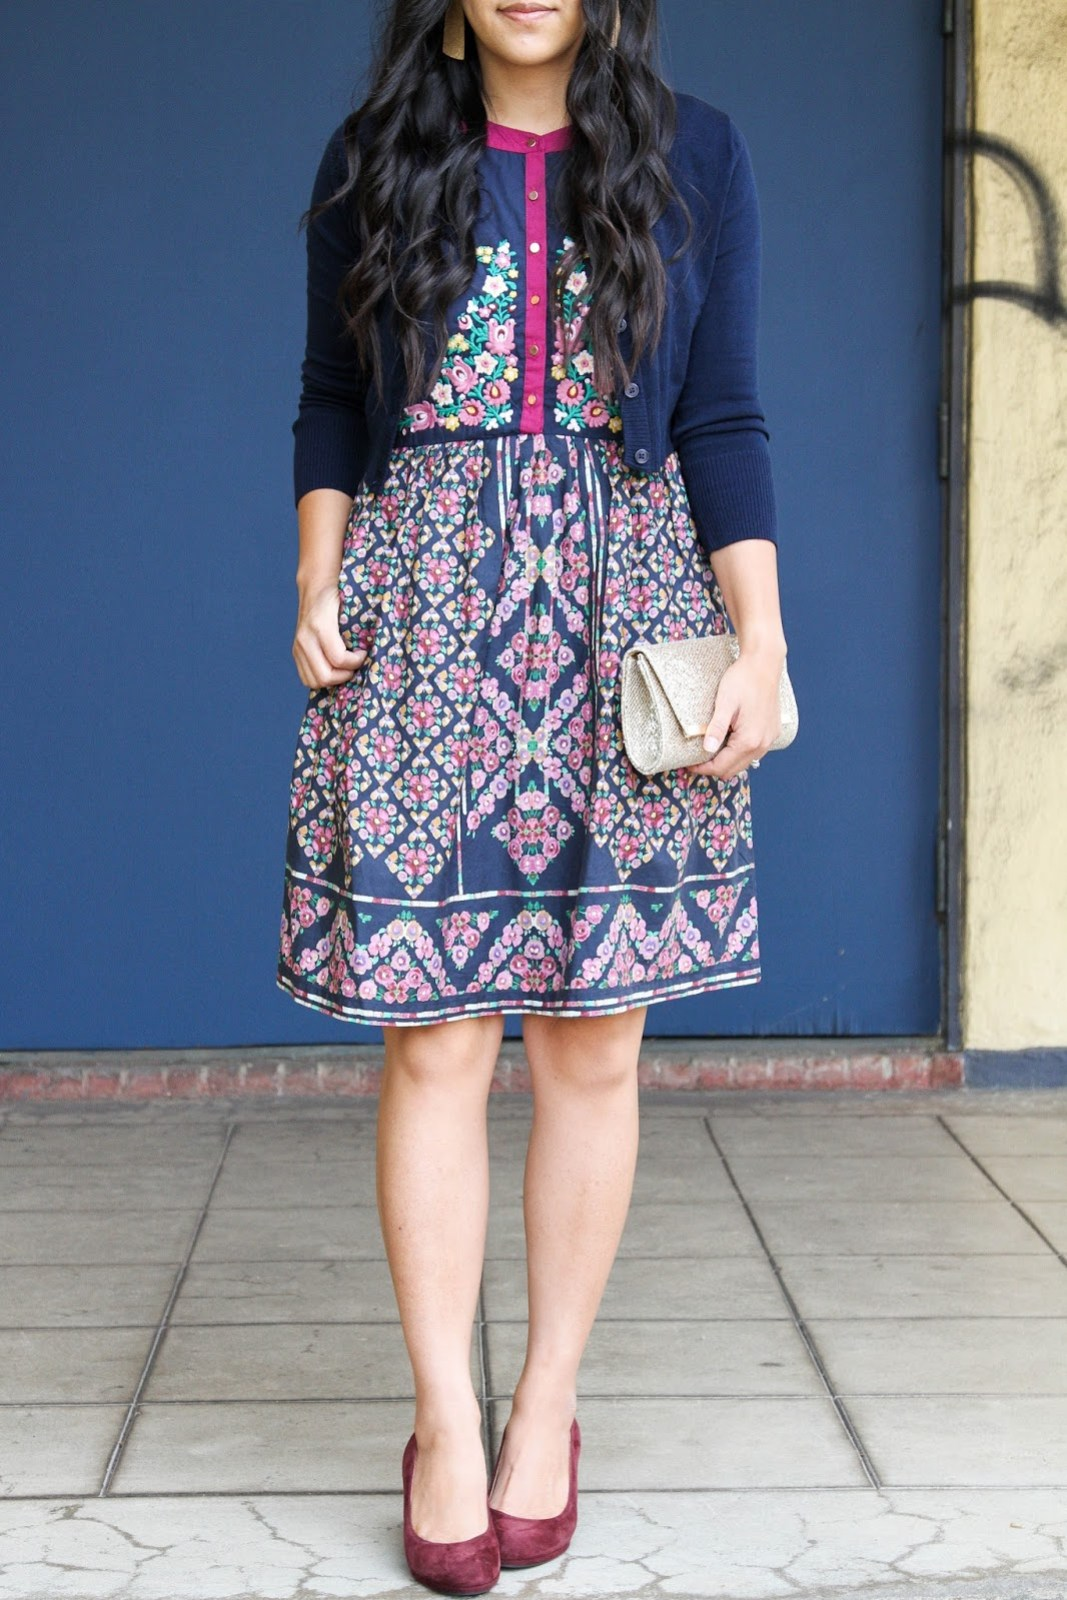 Gold Clutch + Navy Floral Dress + Navy Cardigan + Gold Earrings + Nude Pumps